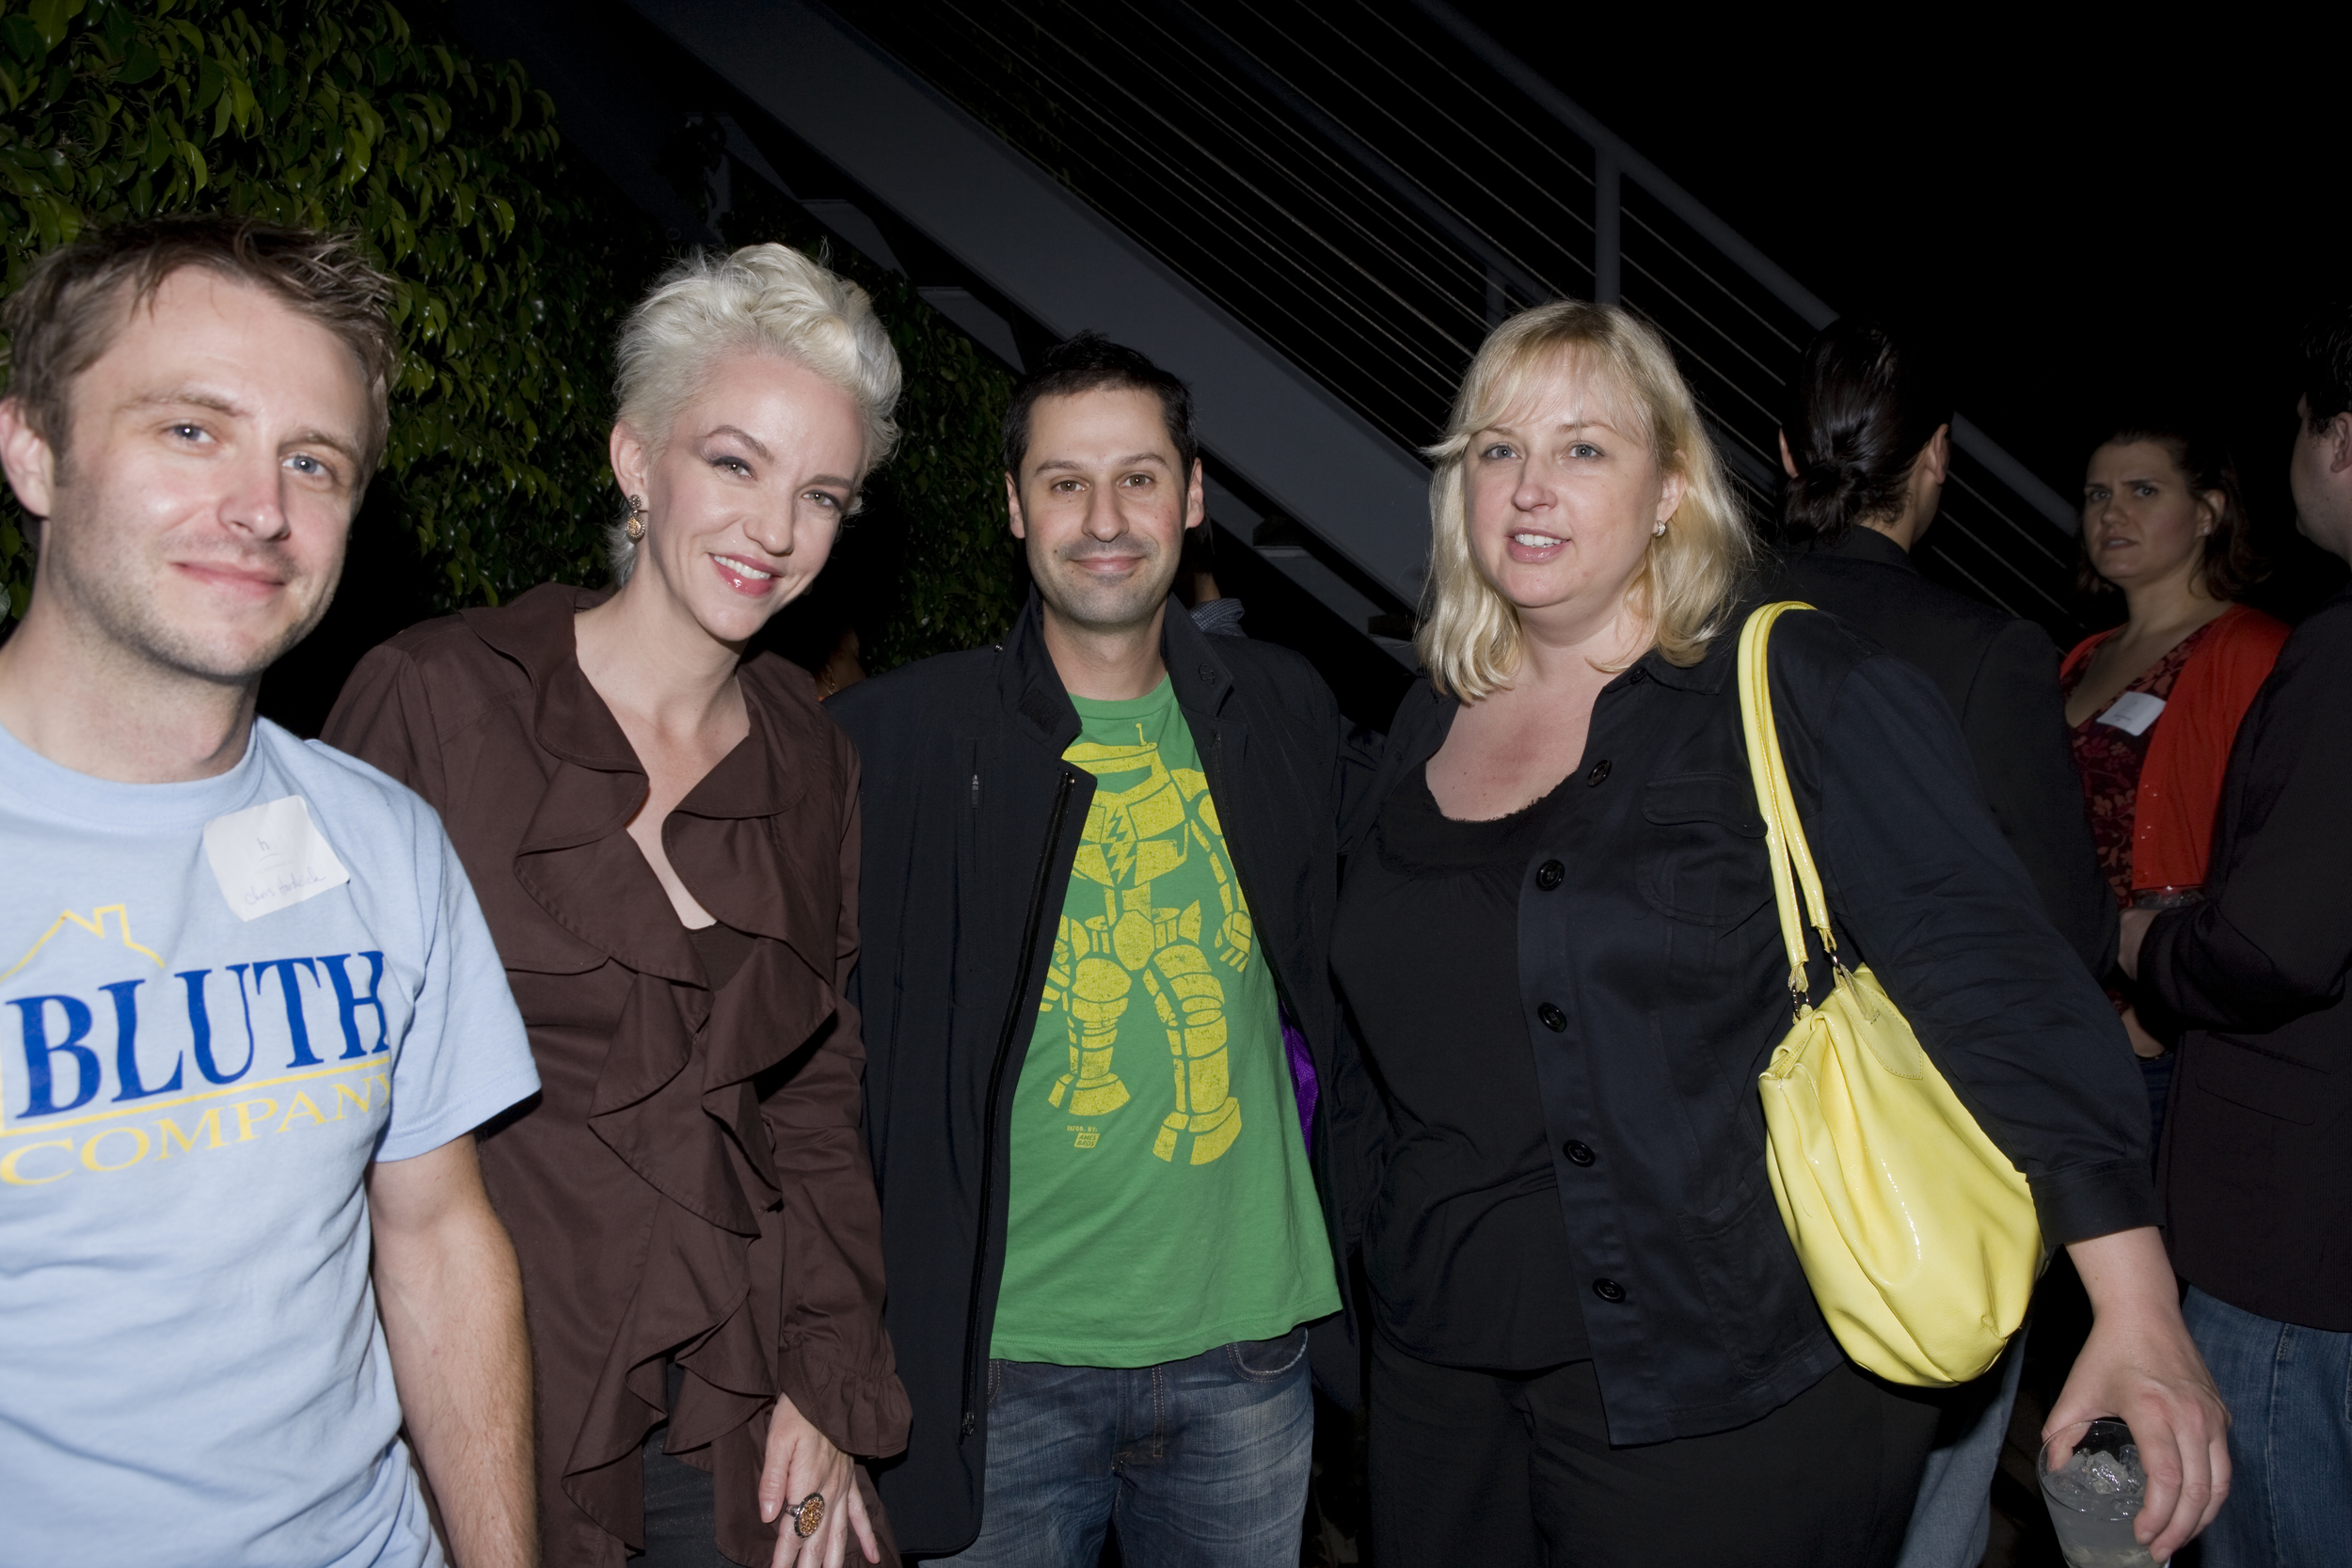 with Chris Hardwick, Xeni Jardin, and Wired's Melanie Cornwell